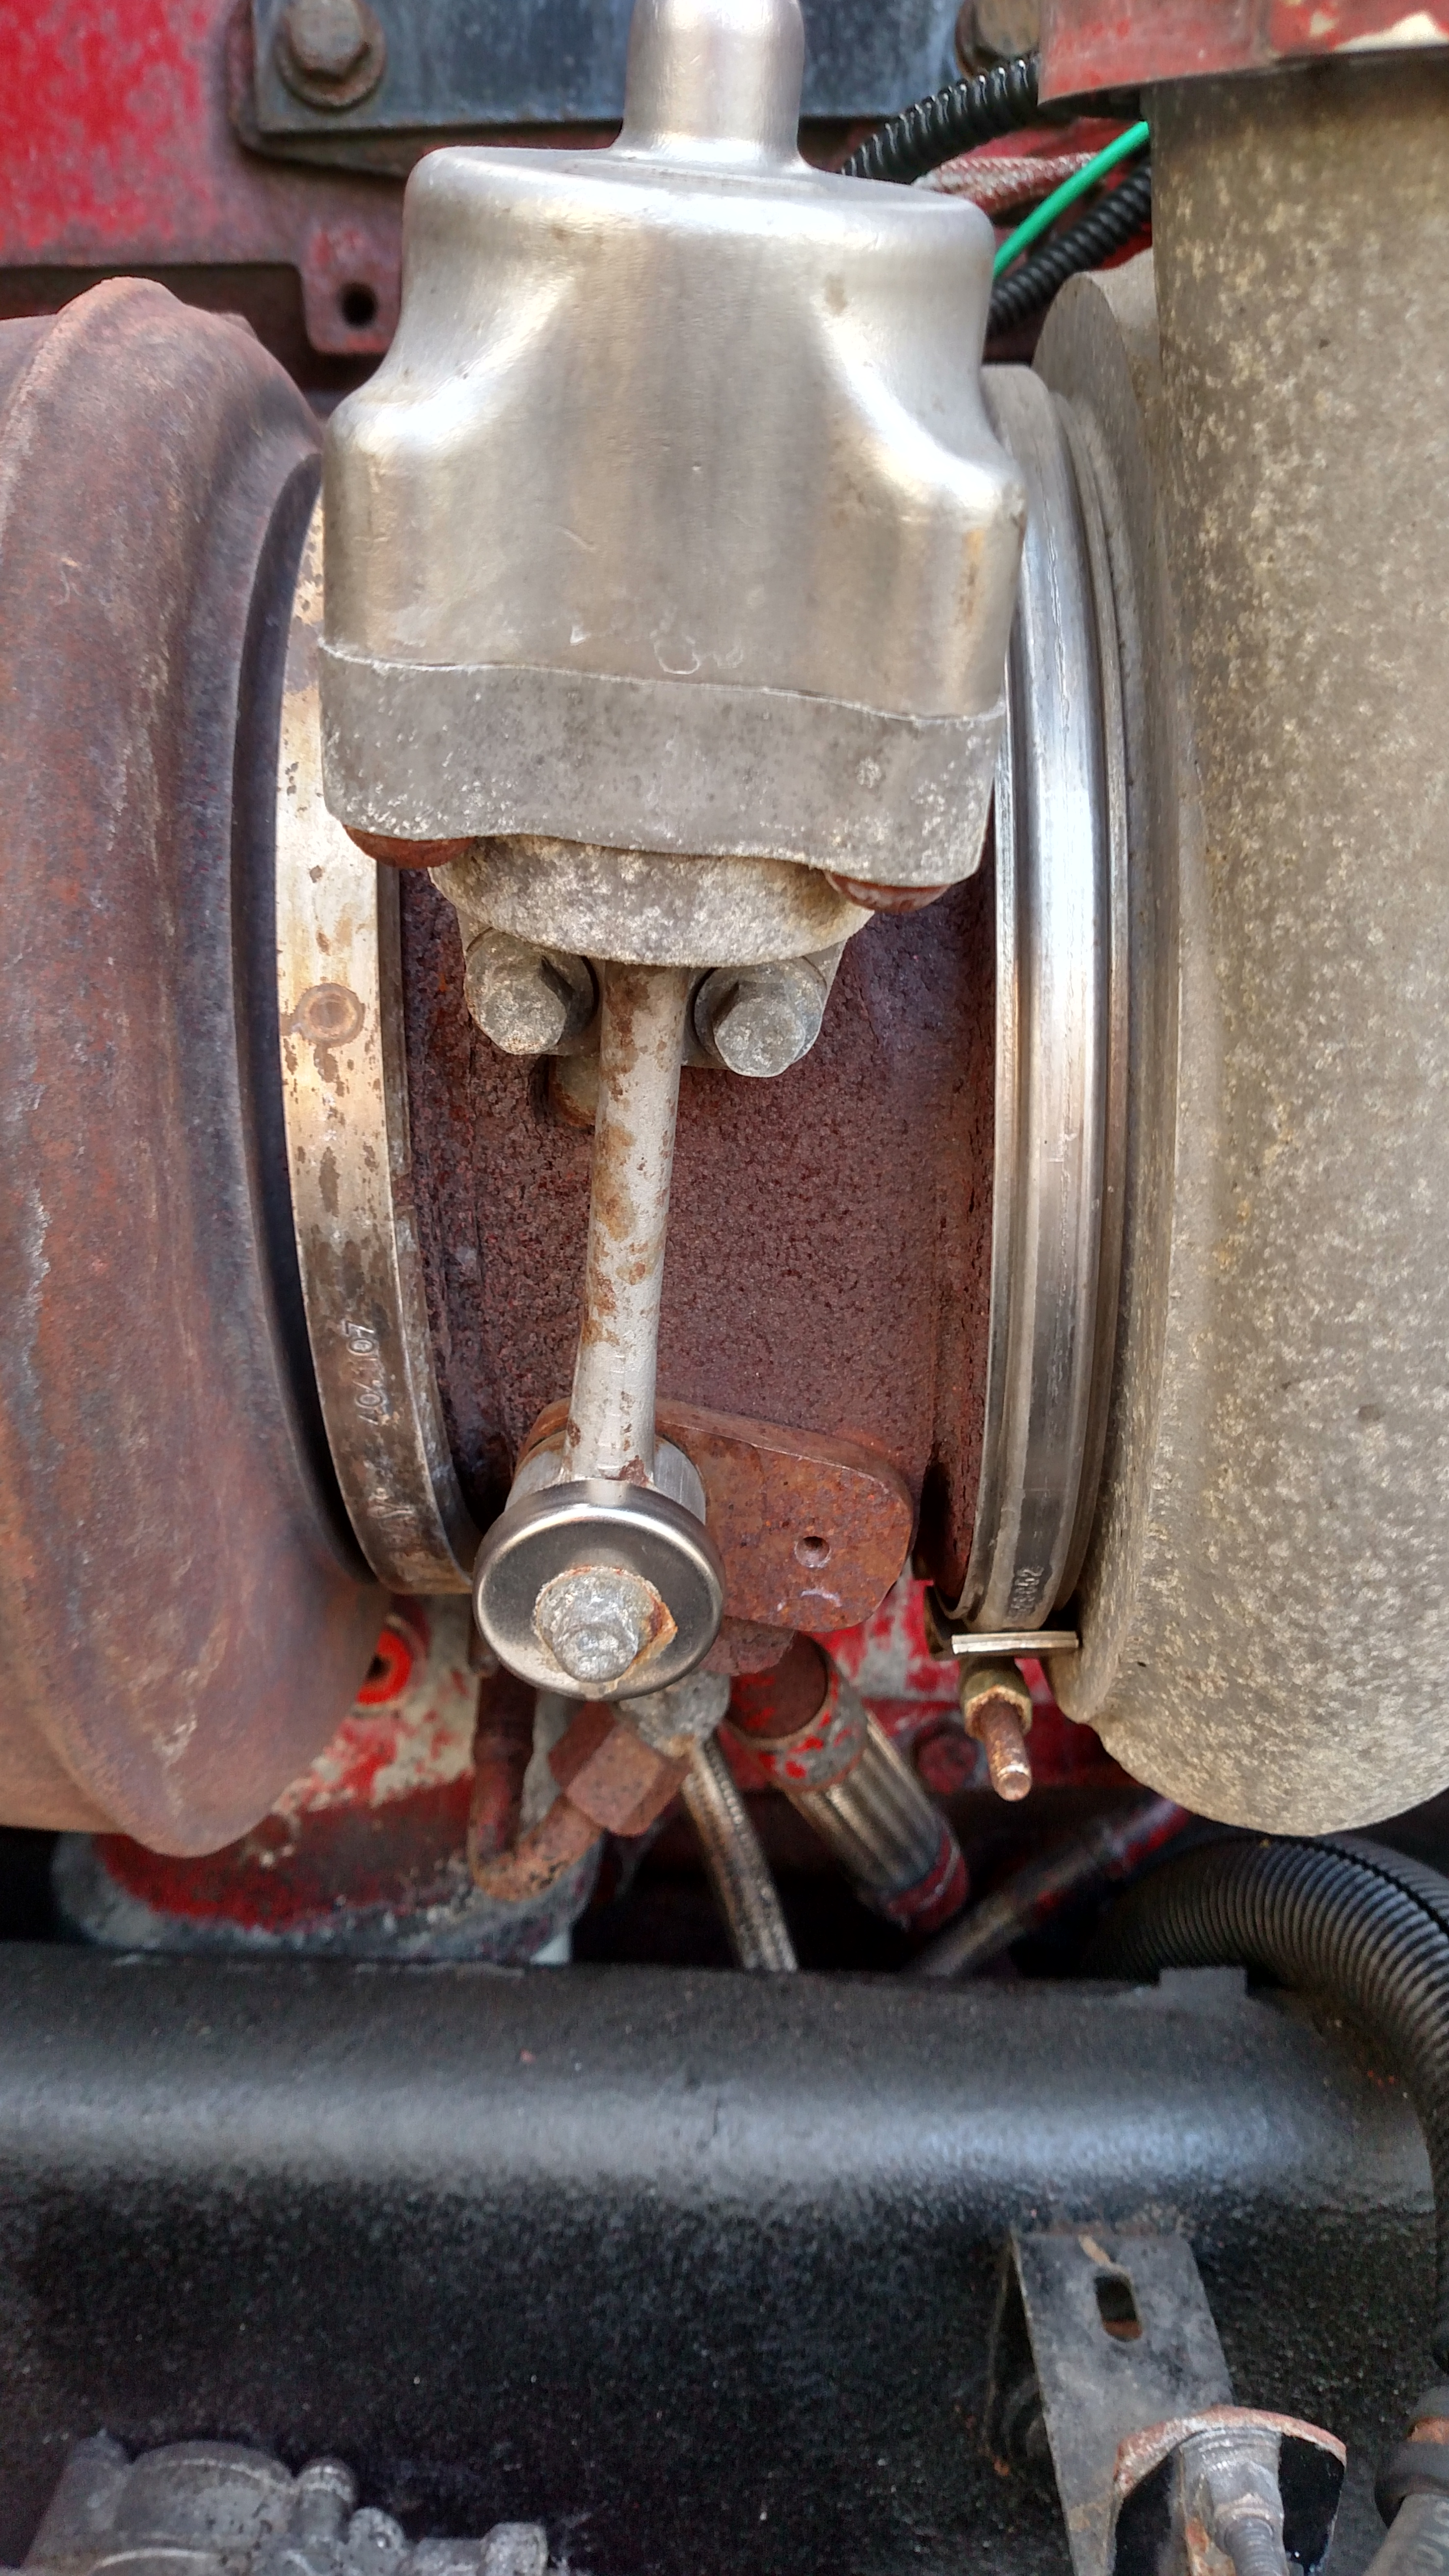 I have a pair of 2007 Kenworth T600, with Cummins isx  I noticed on